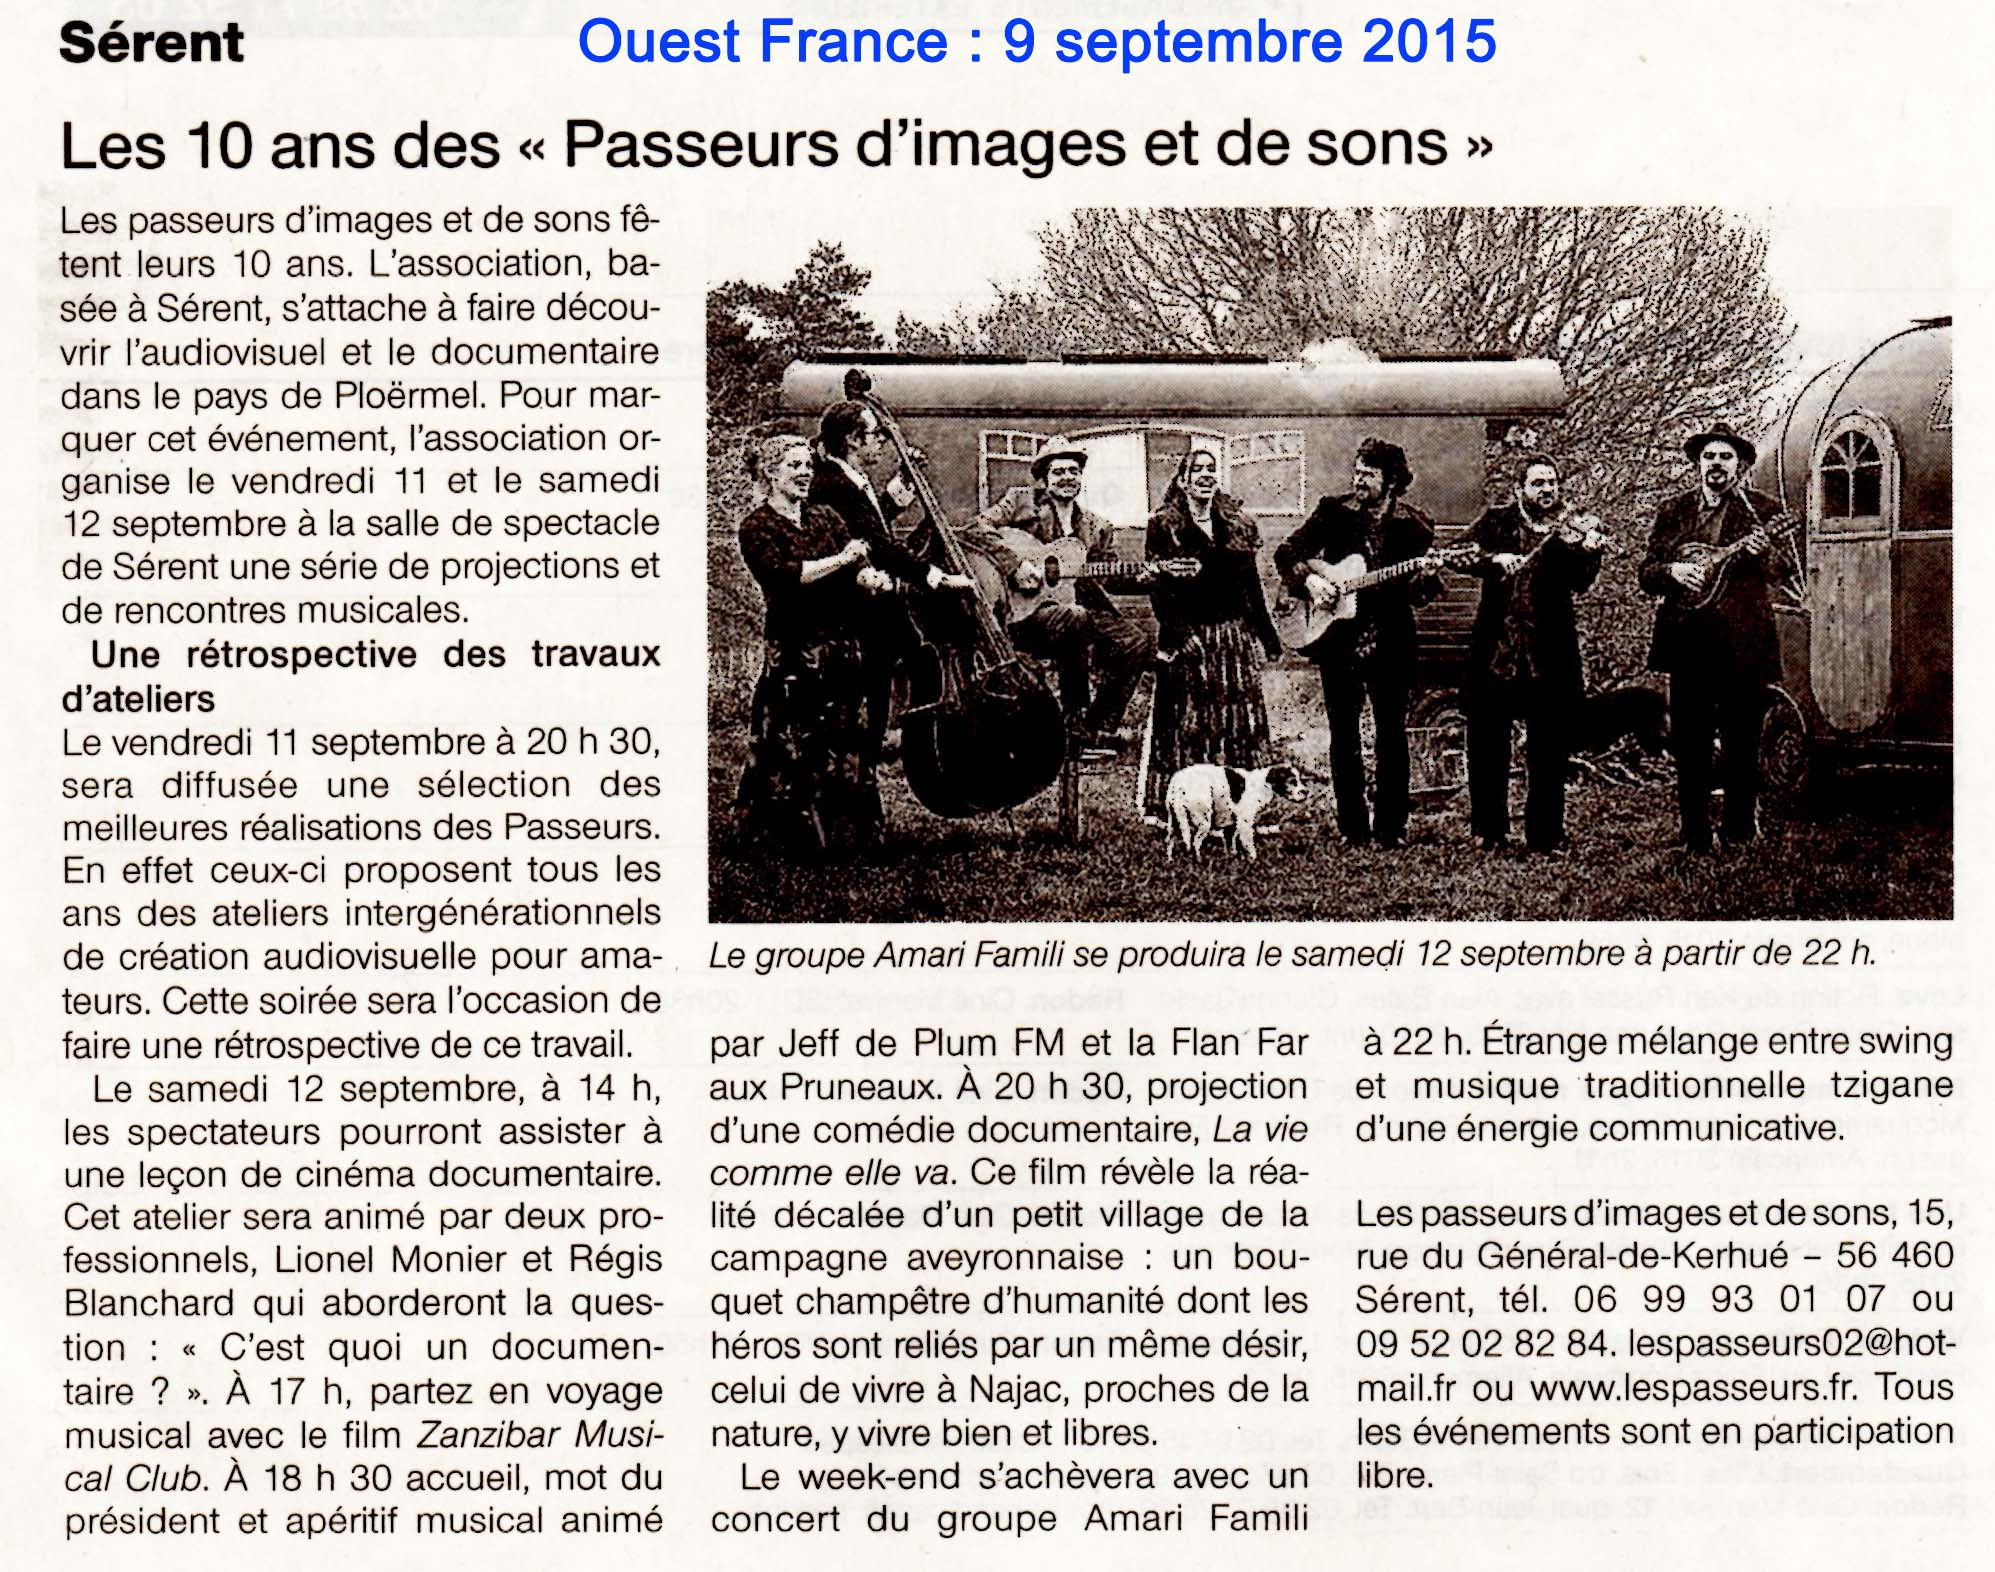 2015 09 09 10 ans Ouest France.jpg